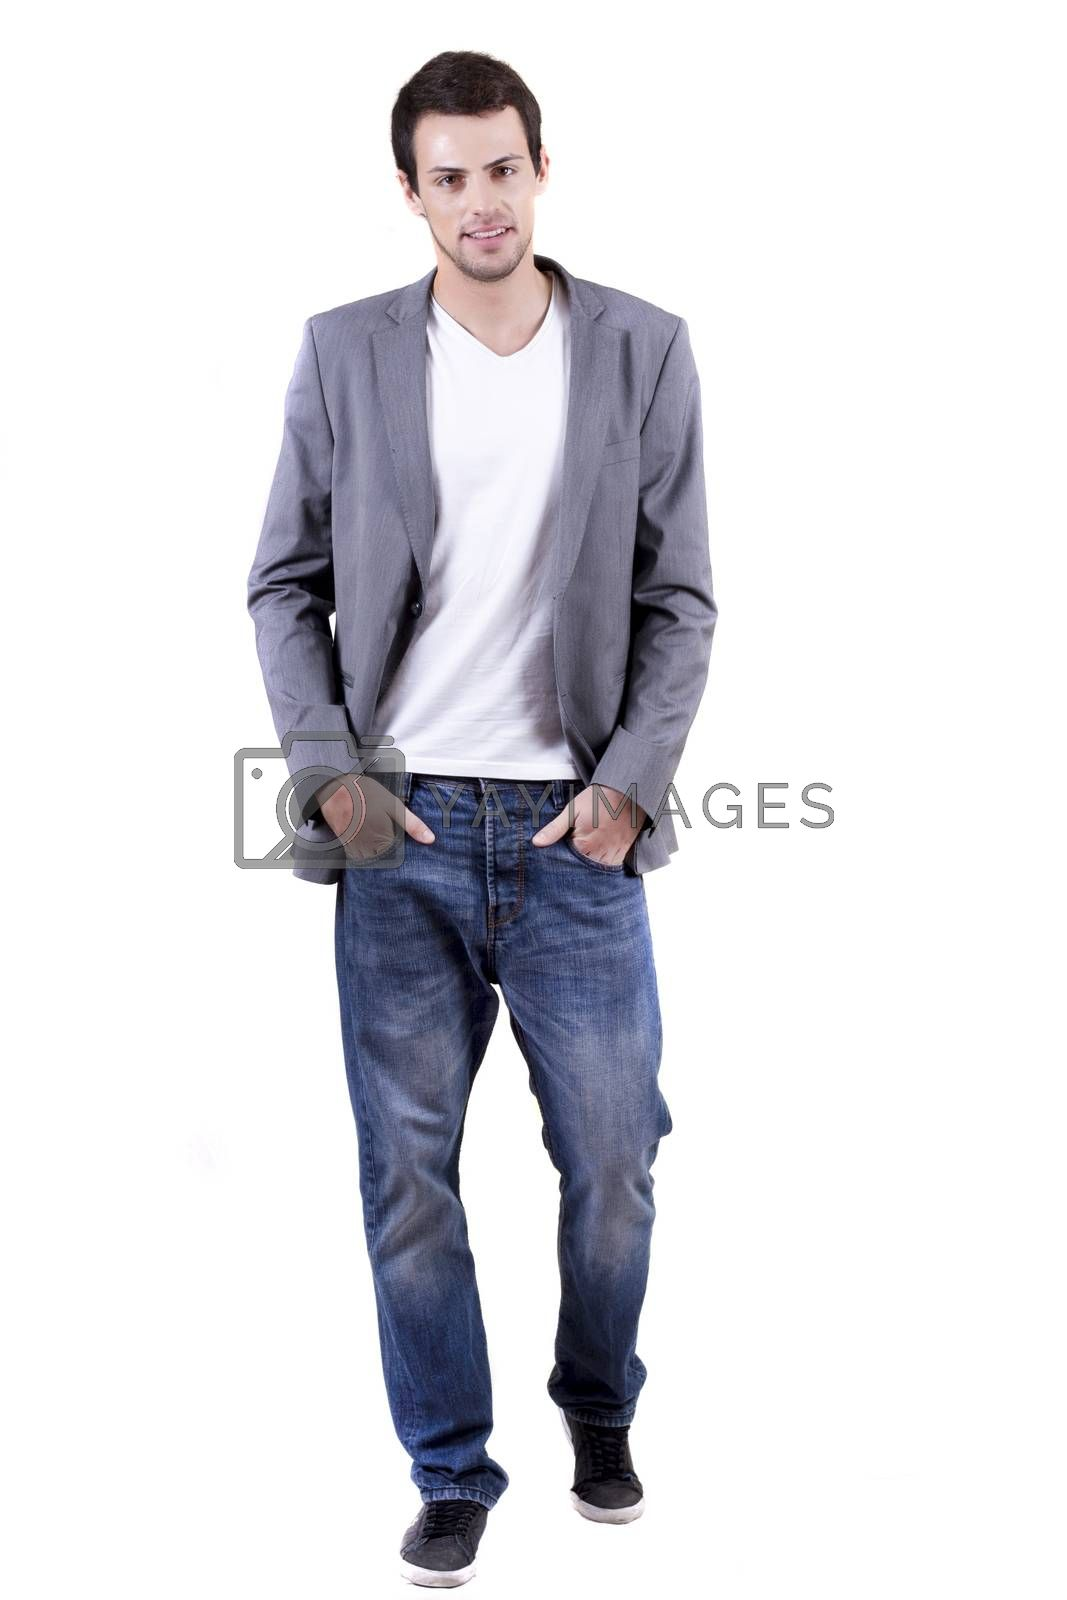 View of a young man walking on a white  background.